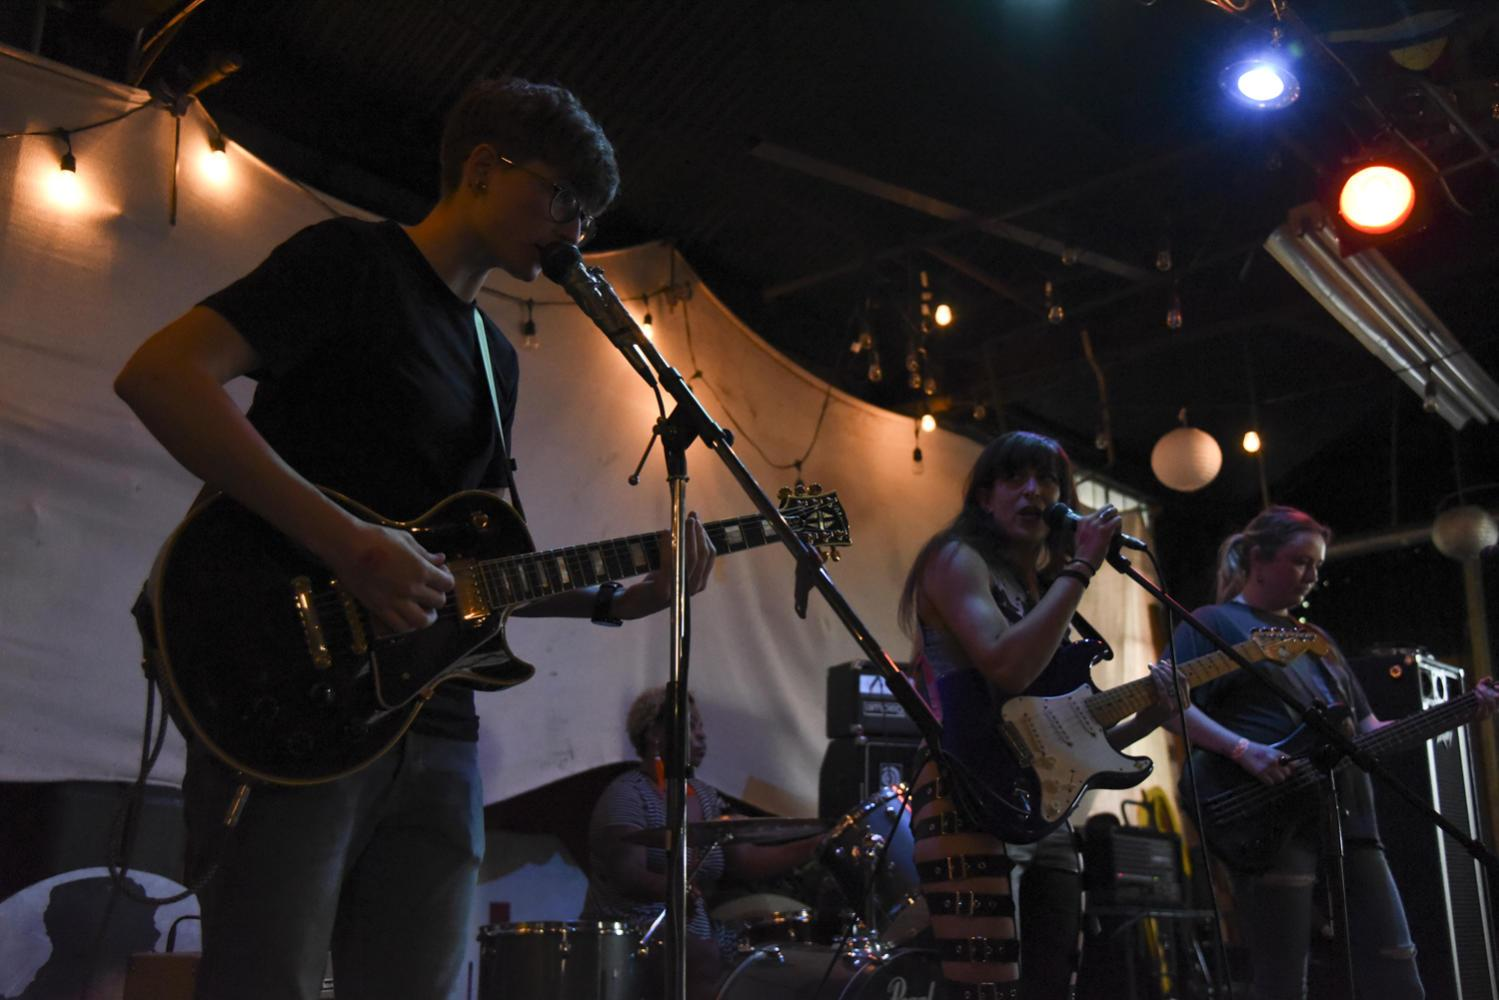 Full Bush, a heavy post-punk band based out of Philadelphia, traveled to Pittsburgh to perform at Ladyfest Sunday evening. (Photo by Anna Bongardino | Visual Editor)